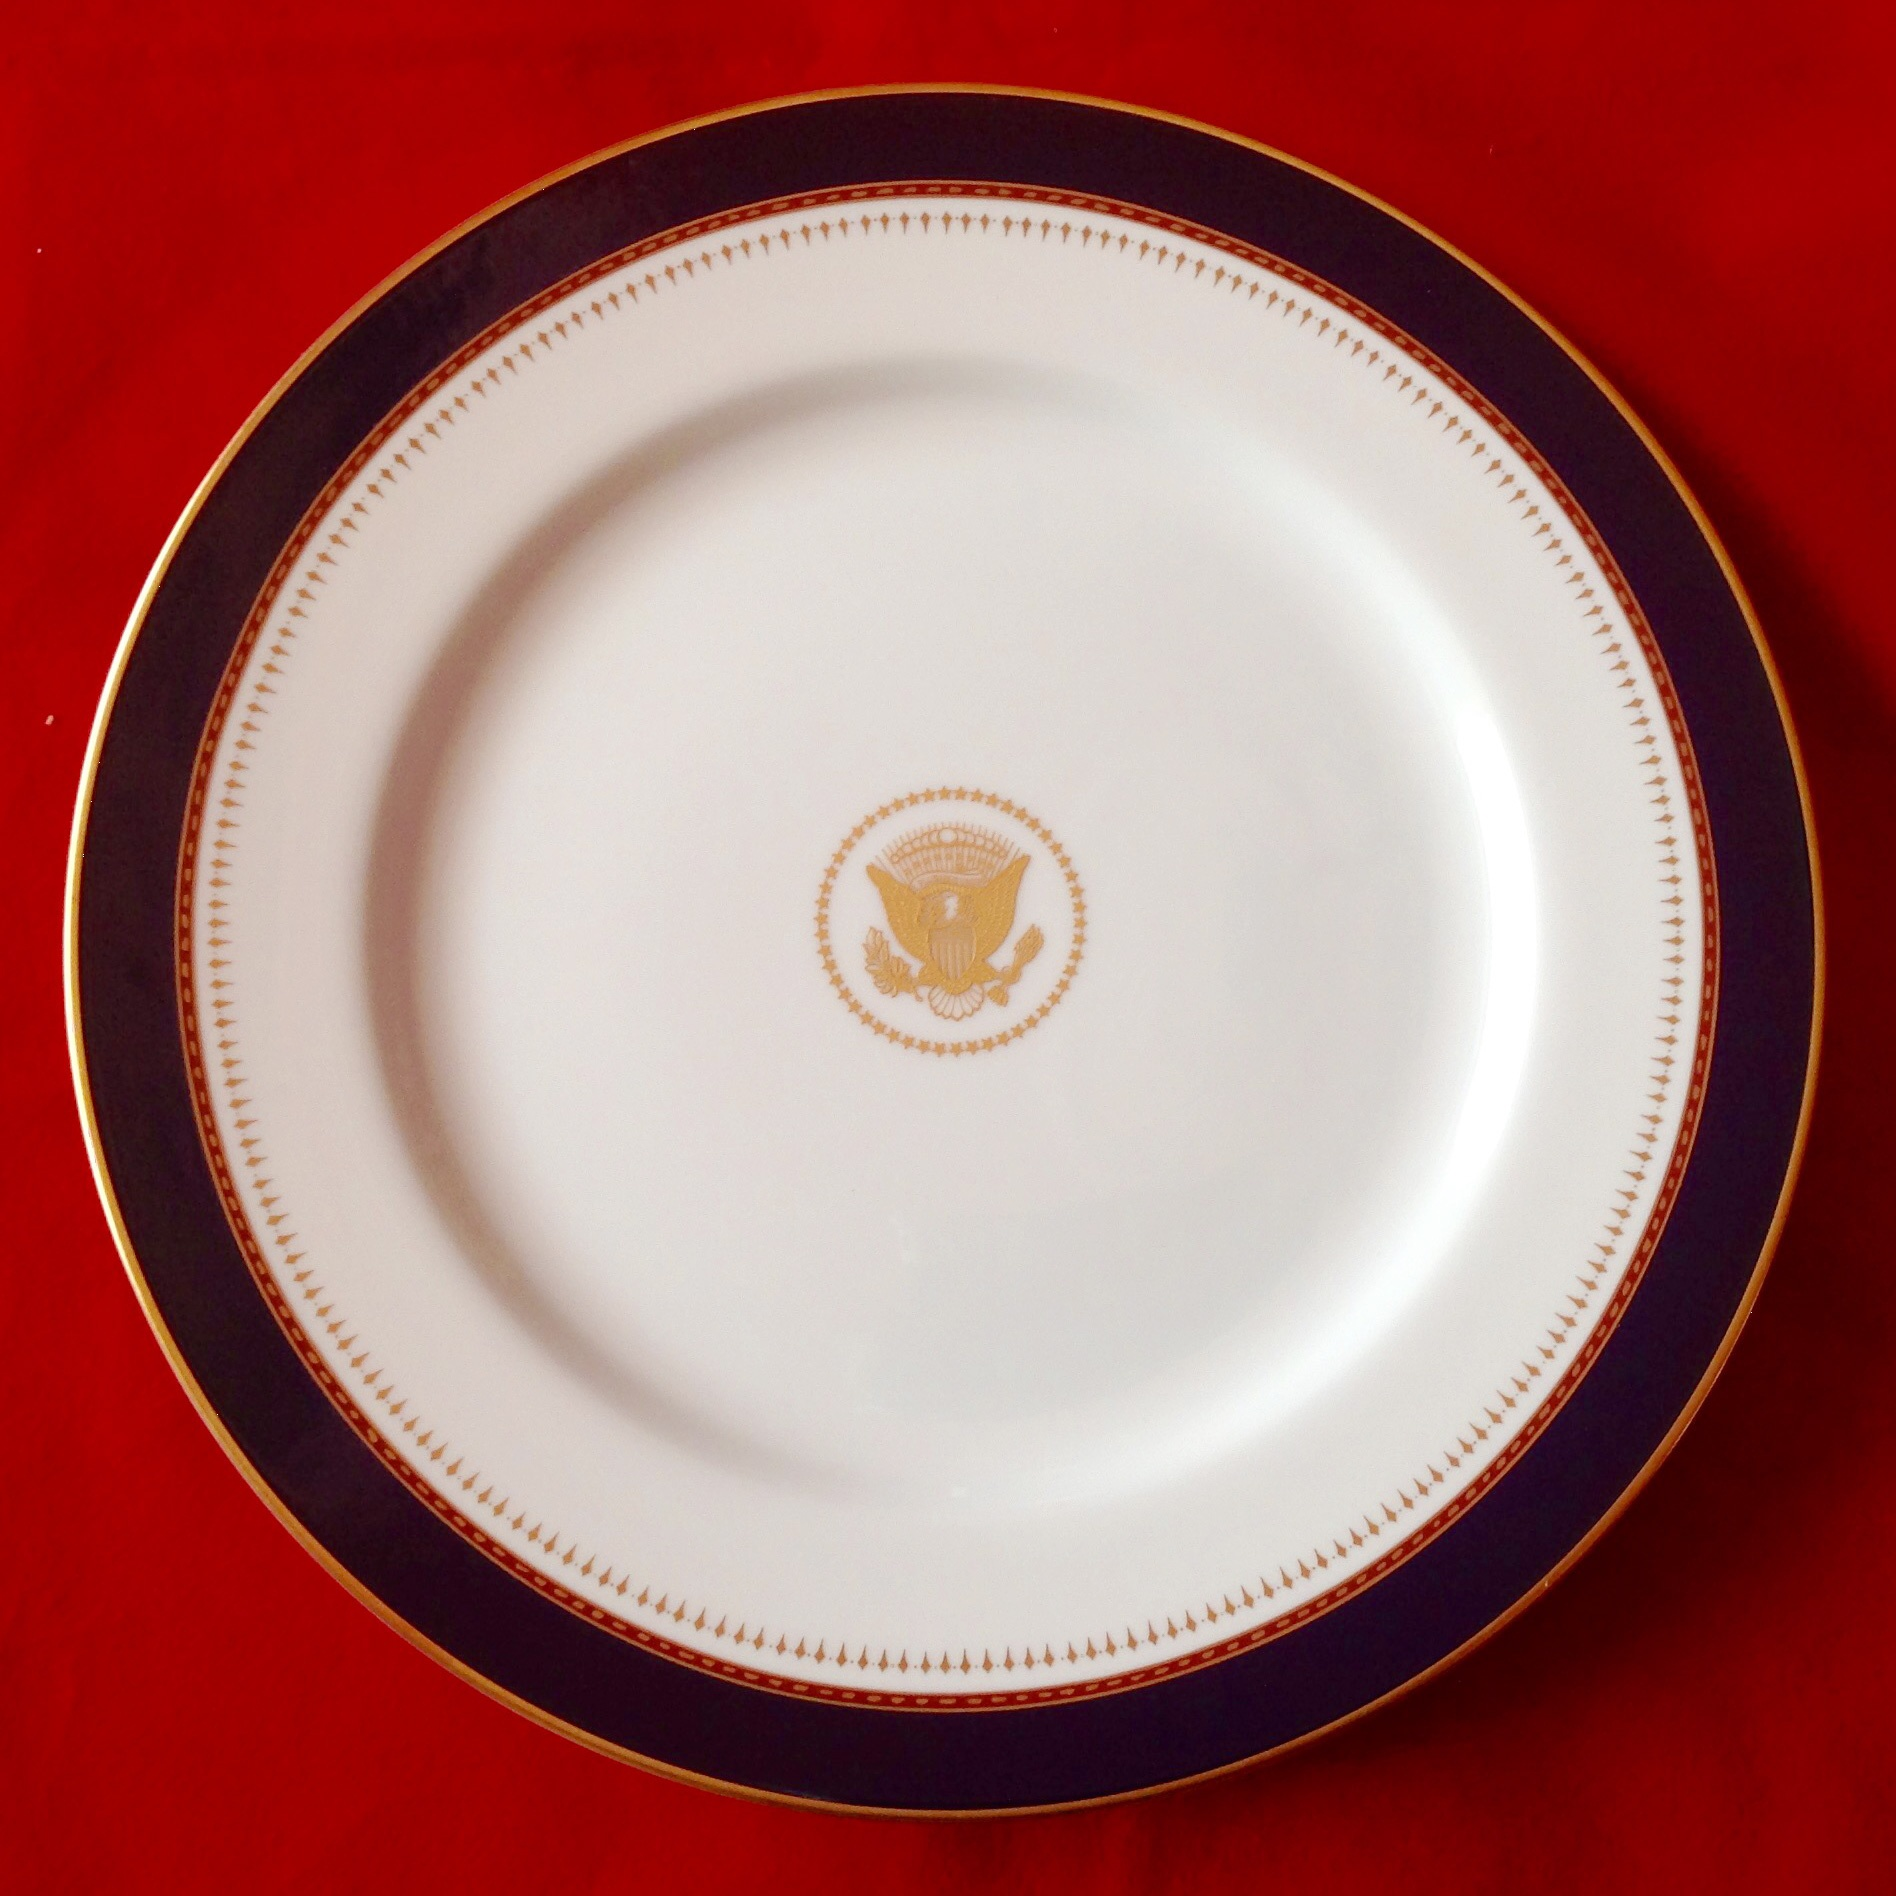 REAGAN WHITE HOUSE CHINA SERVICE PLATE